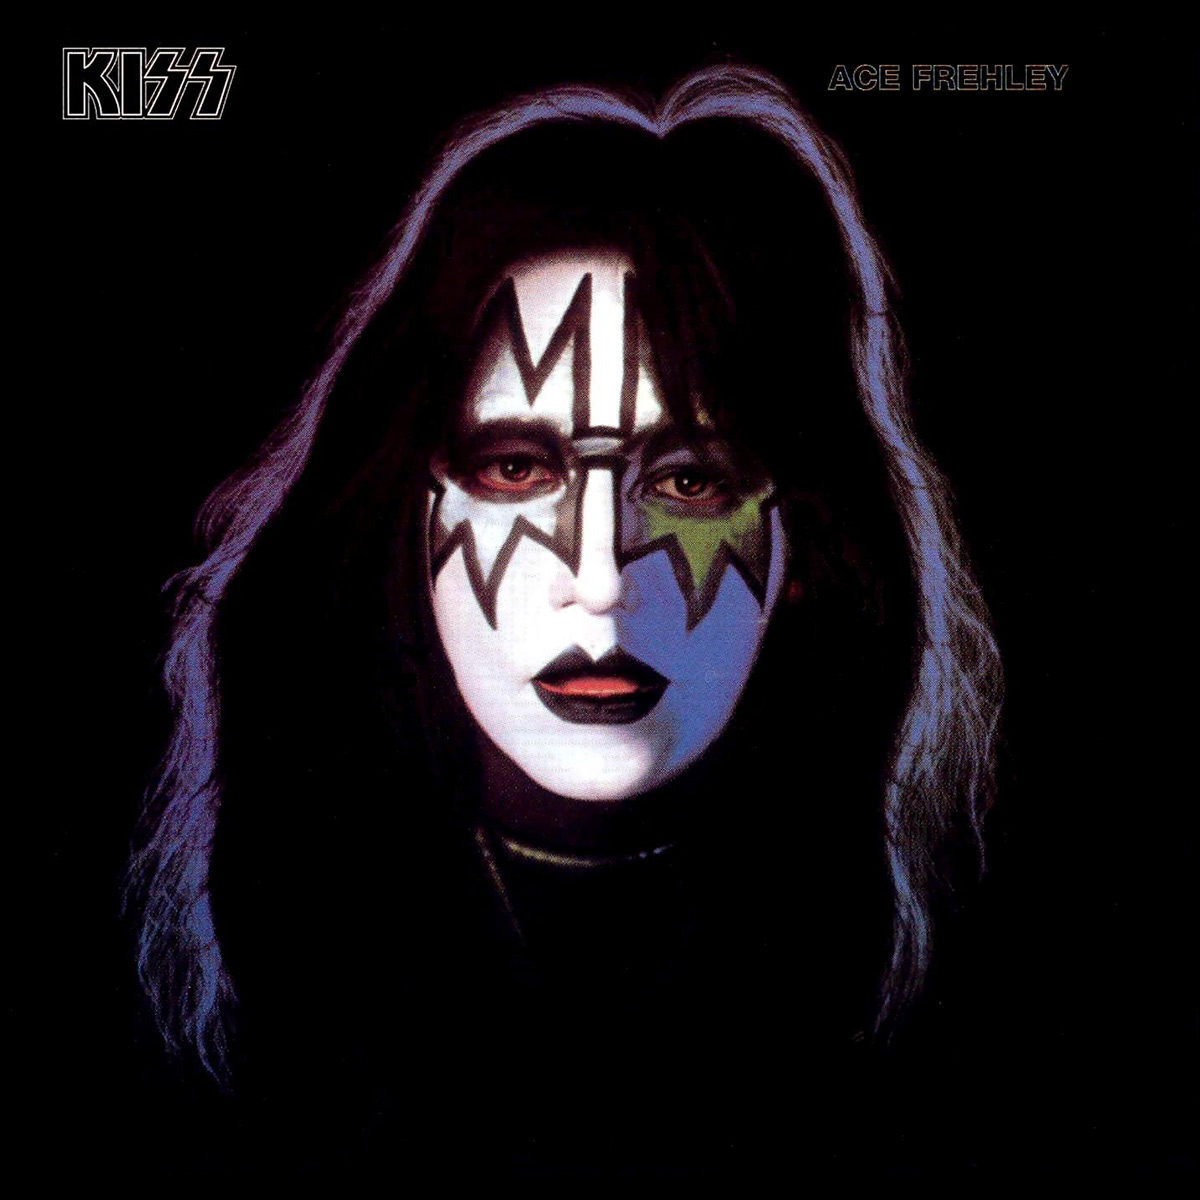 CD Kiss Ace Frehley